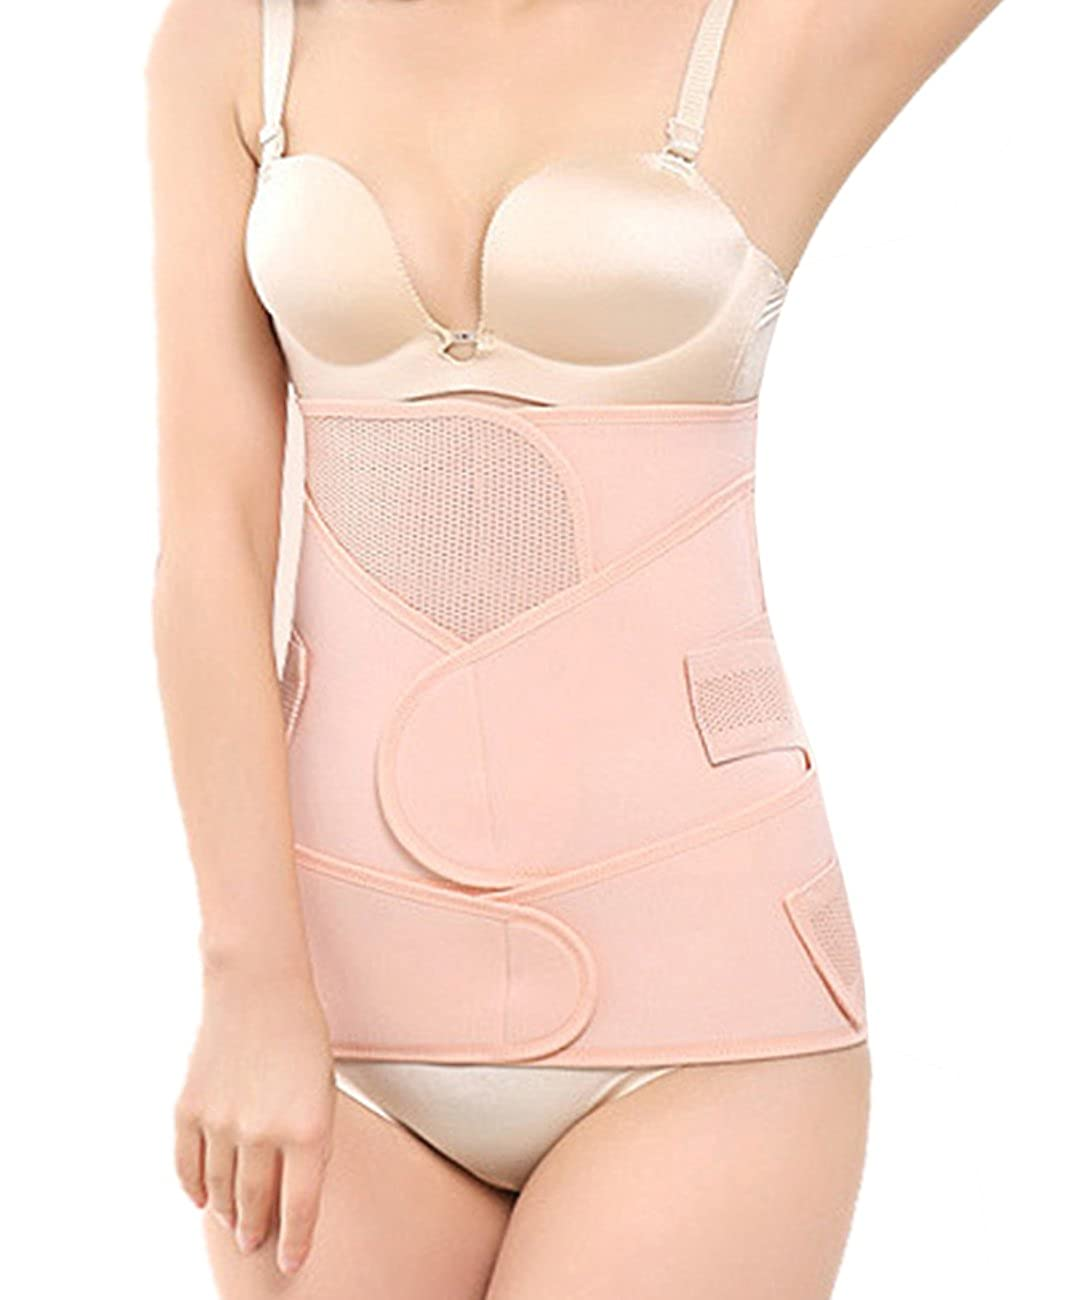 Women 3 in 1 Postpartum Girdle C Section Corset Recovery Belly Band Wrap Belt DDA60/&/&001002